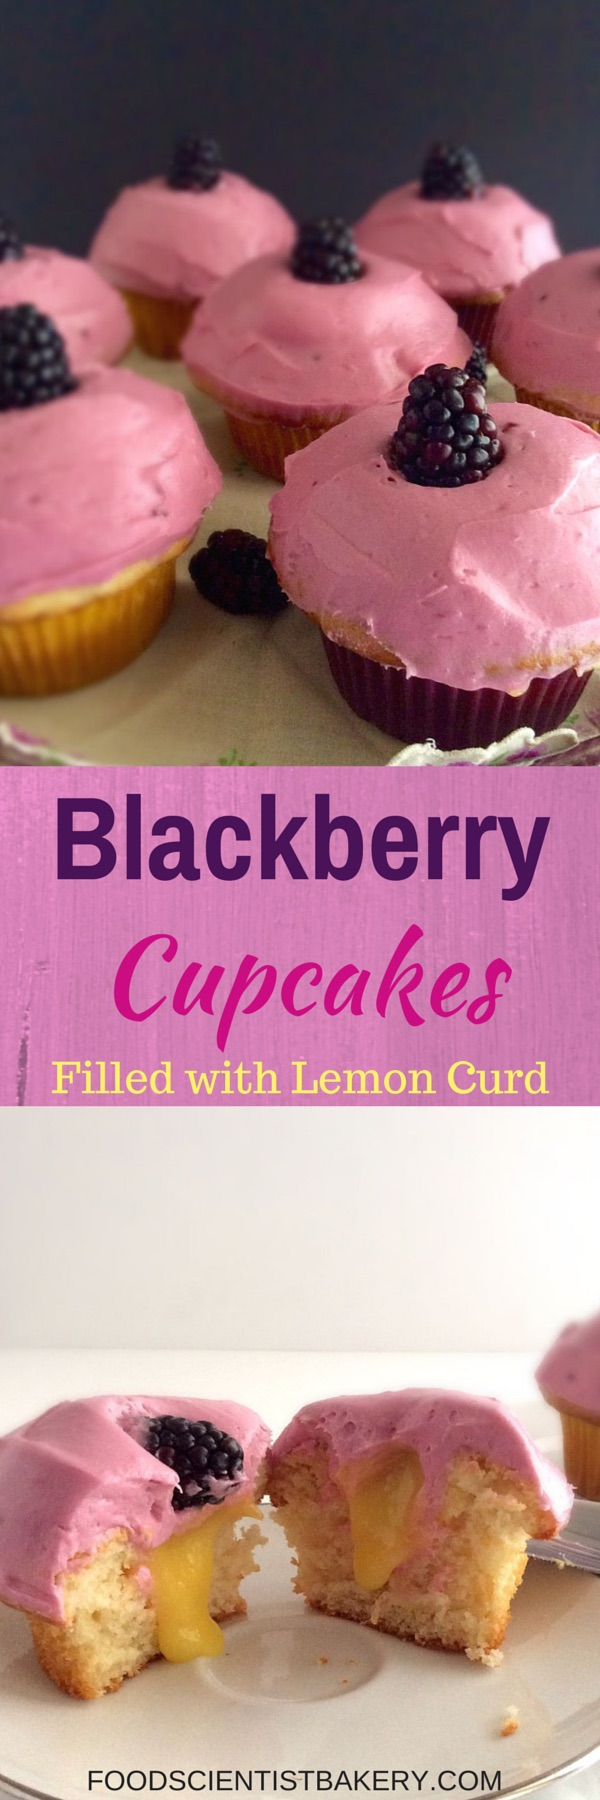 Blackberry Cupcakes Filled With Lemon Curd